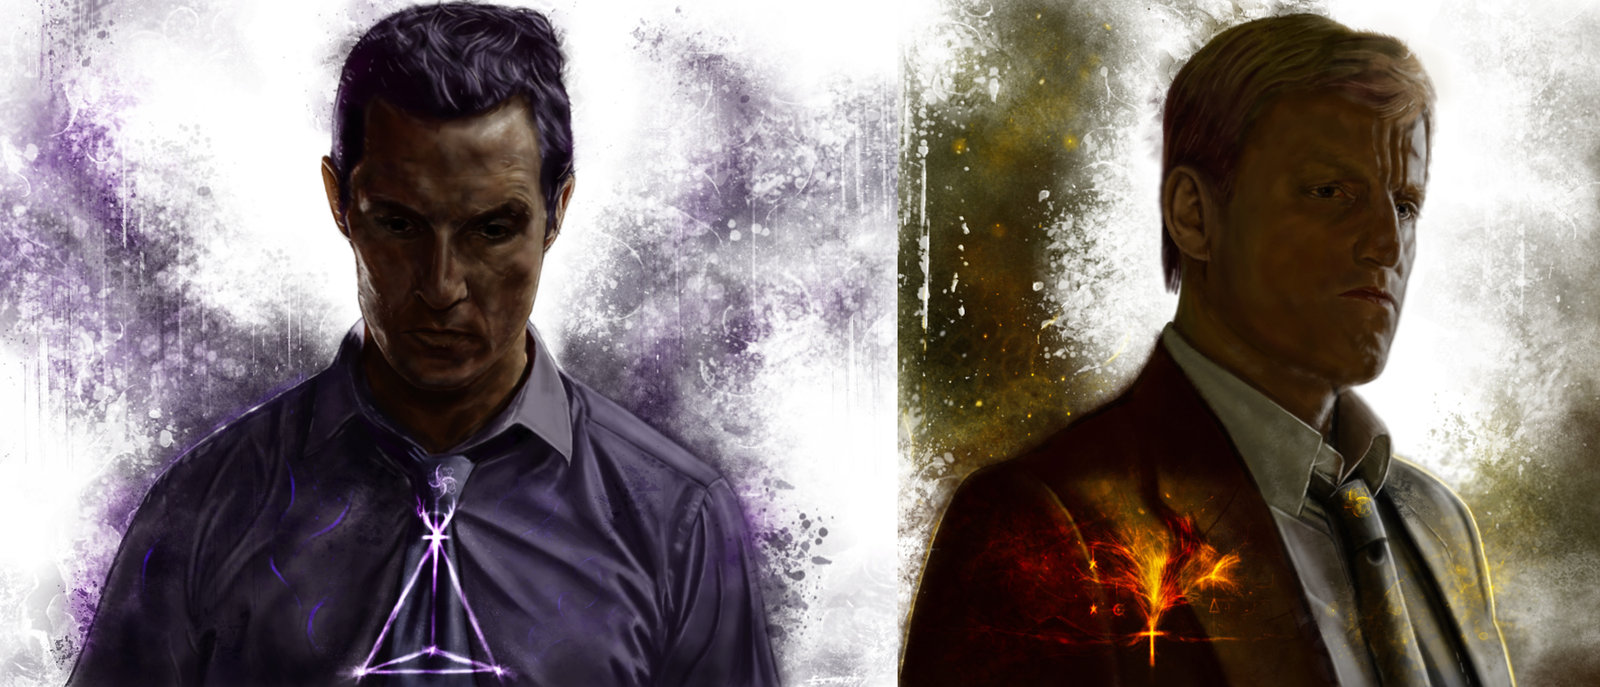 true_detective___rust_cohle_and_martin_hart_vol2_by_p1xer-d799c29